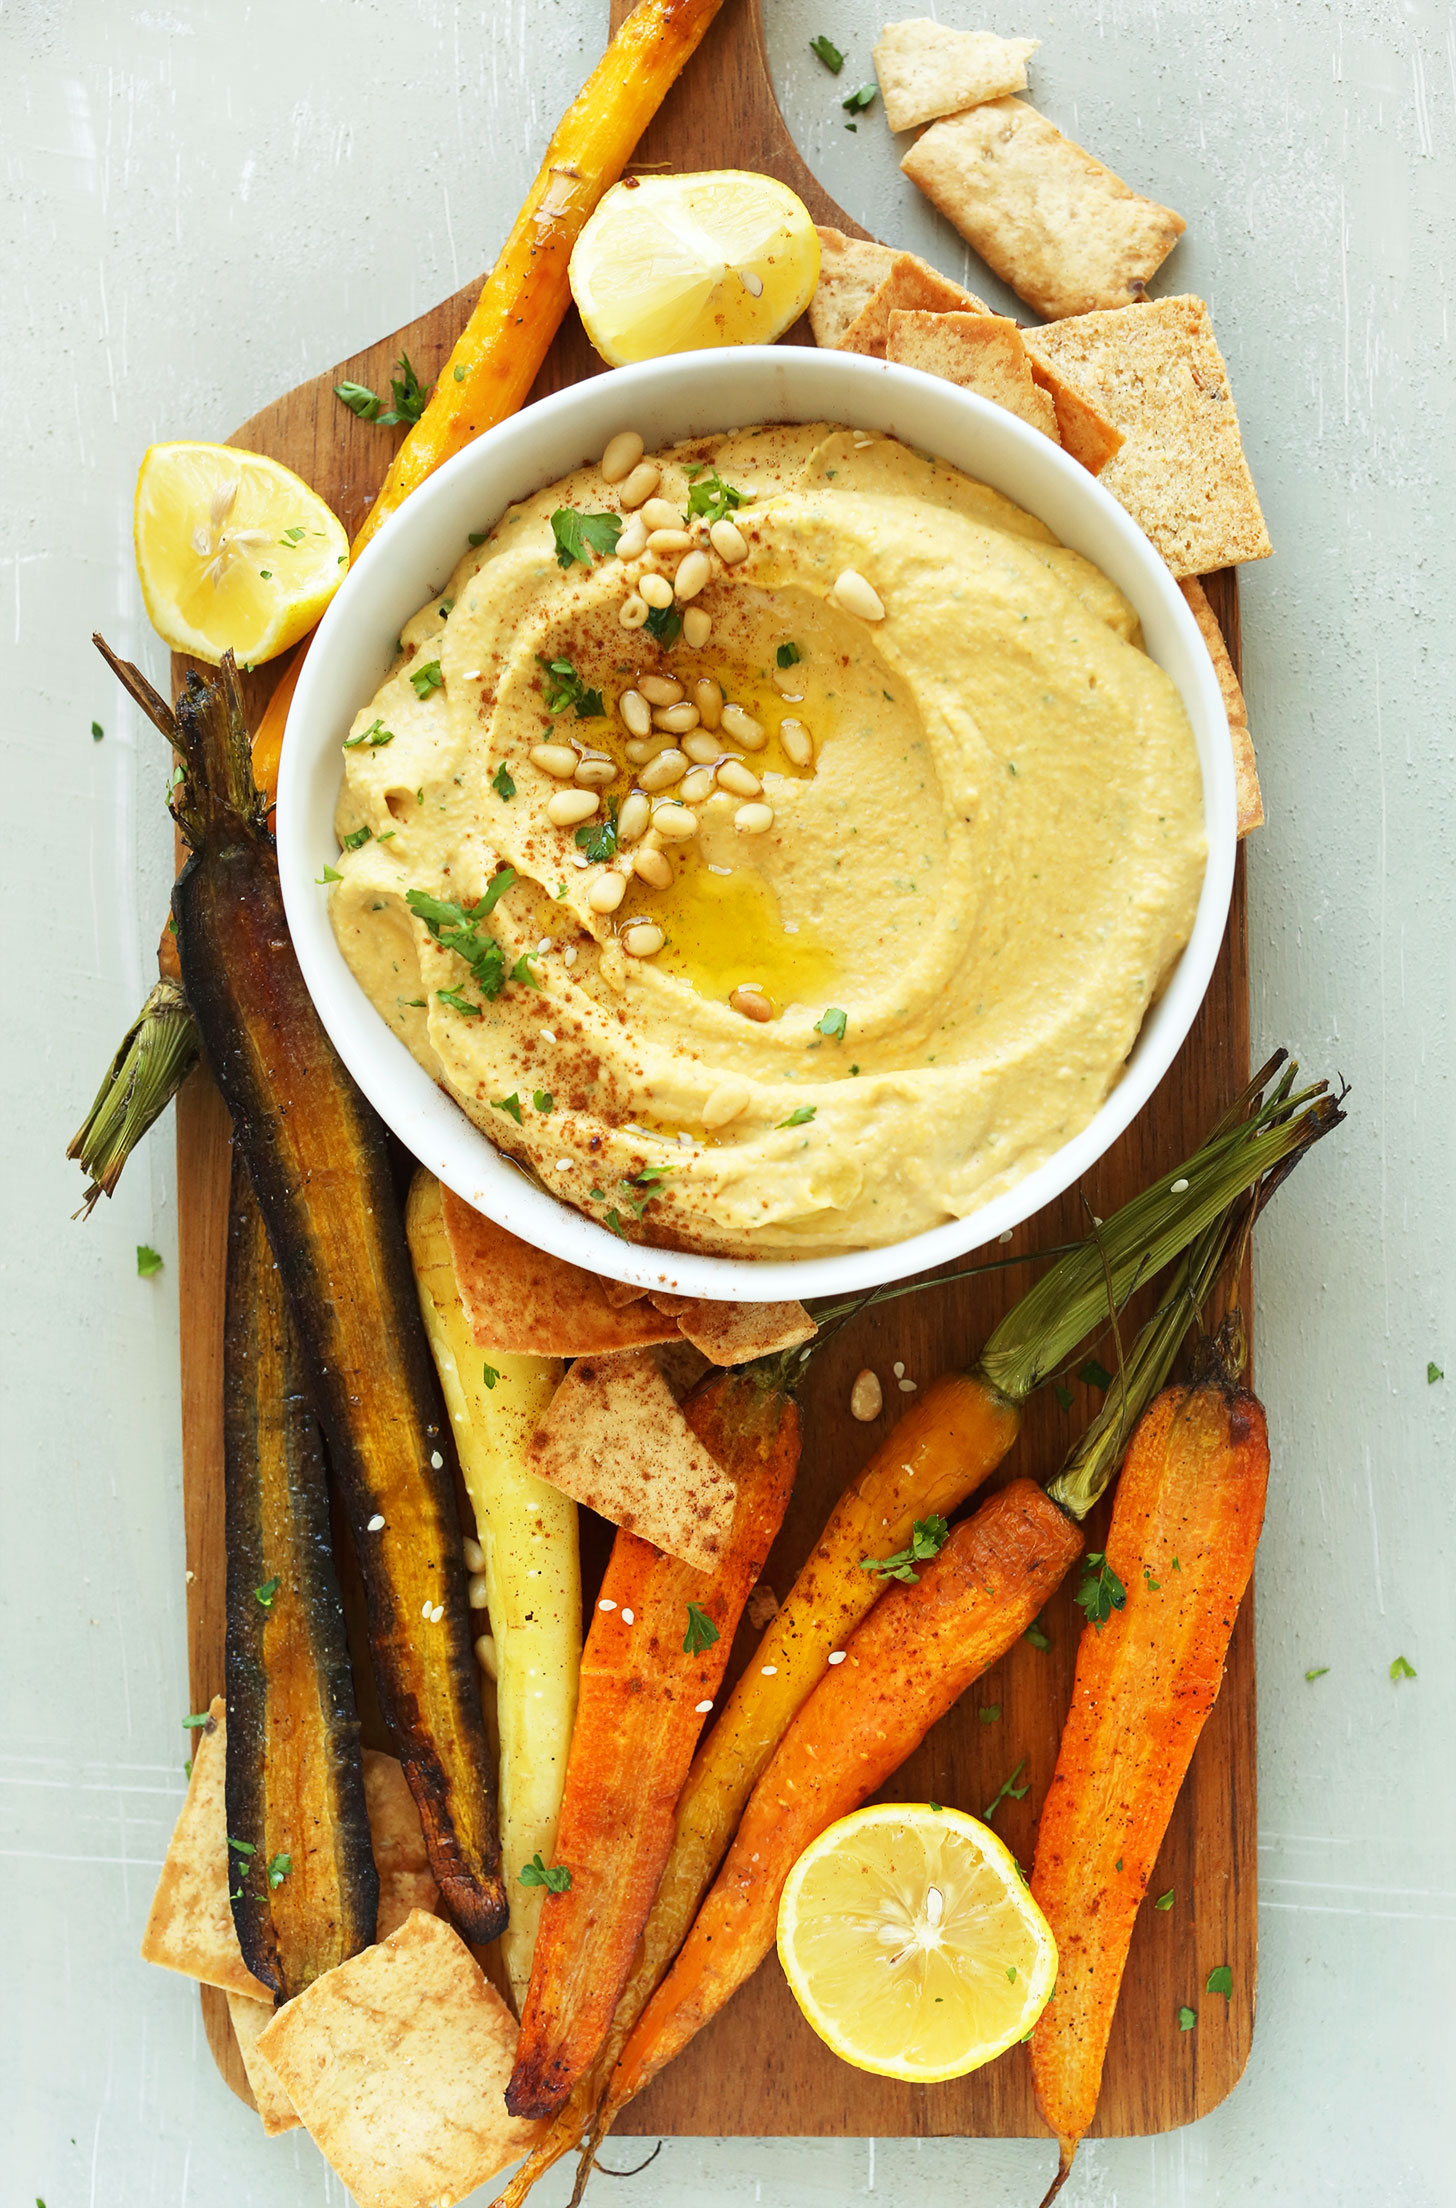 Wood platter with a bowl of gluten-free vegan Butternut Squash Hummus and goodies for dipping